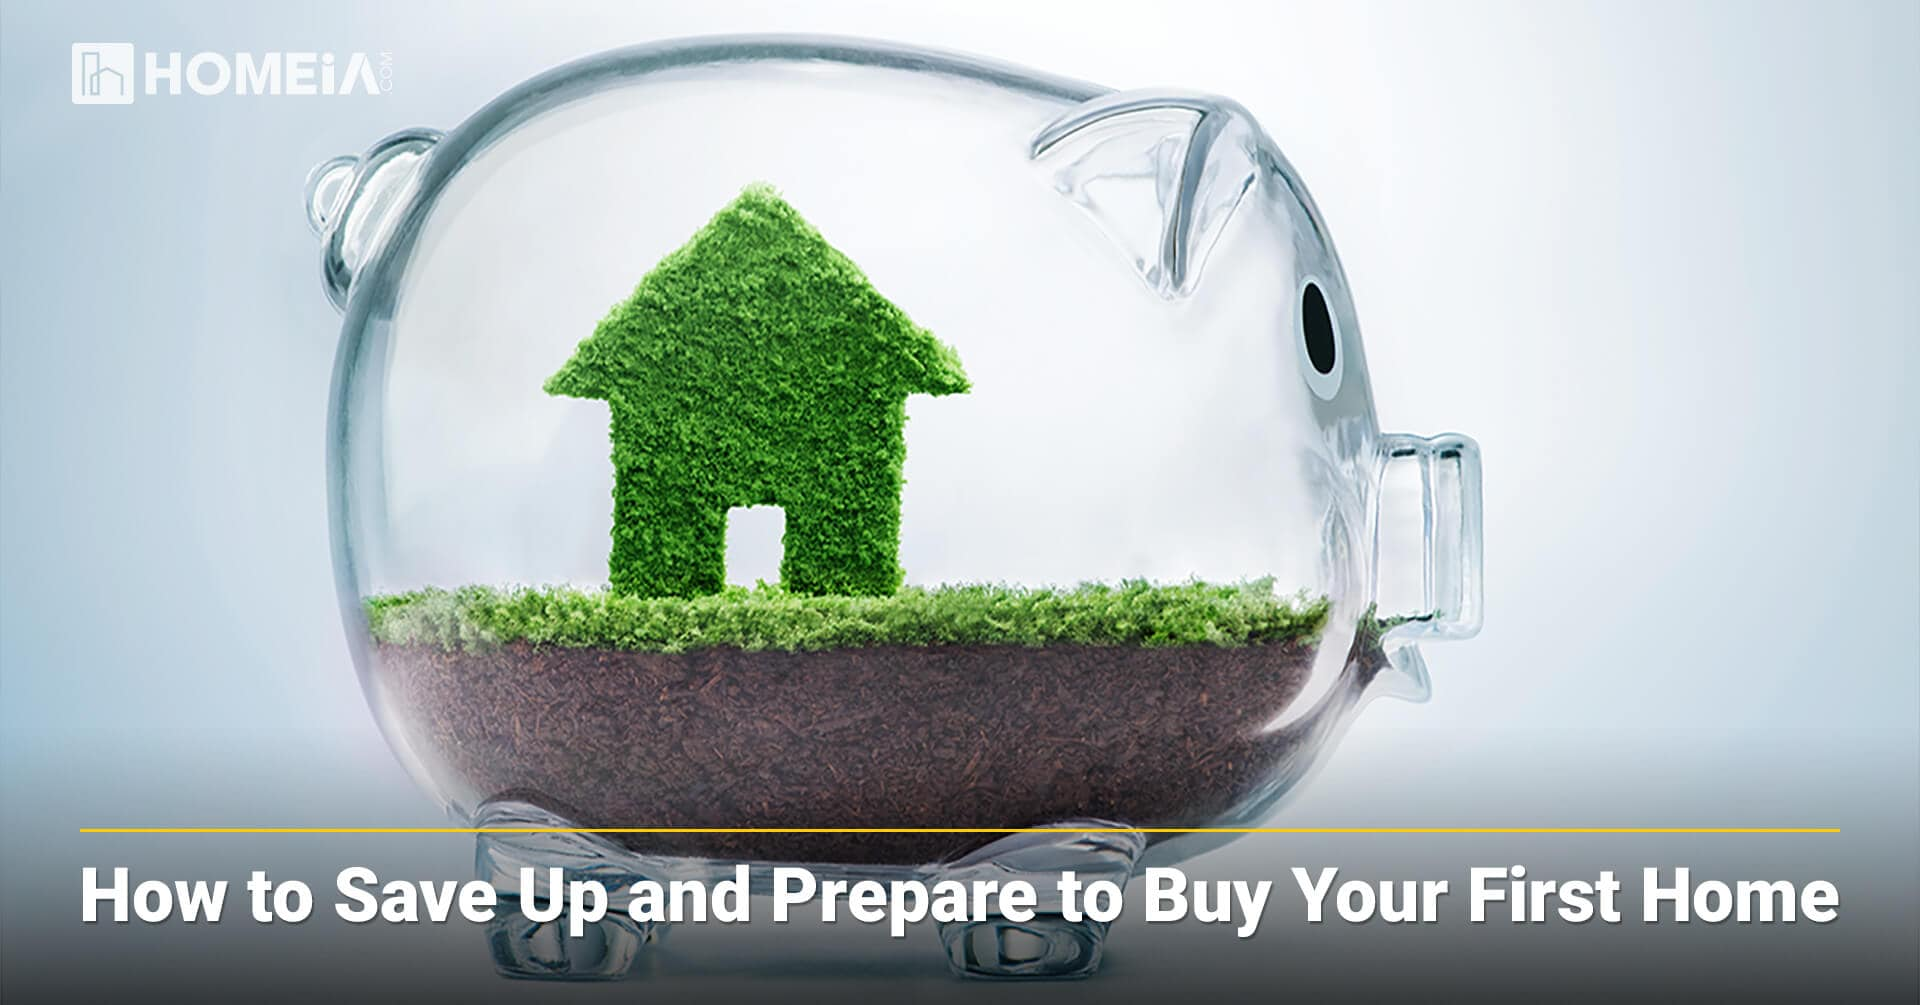 How to Save Up and Prepare to Buy Your First Home